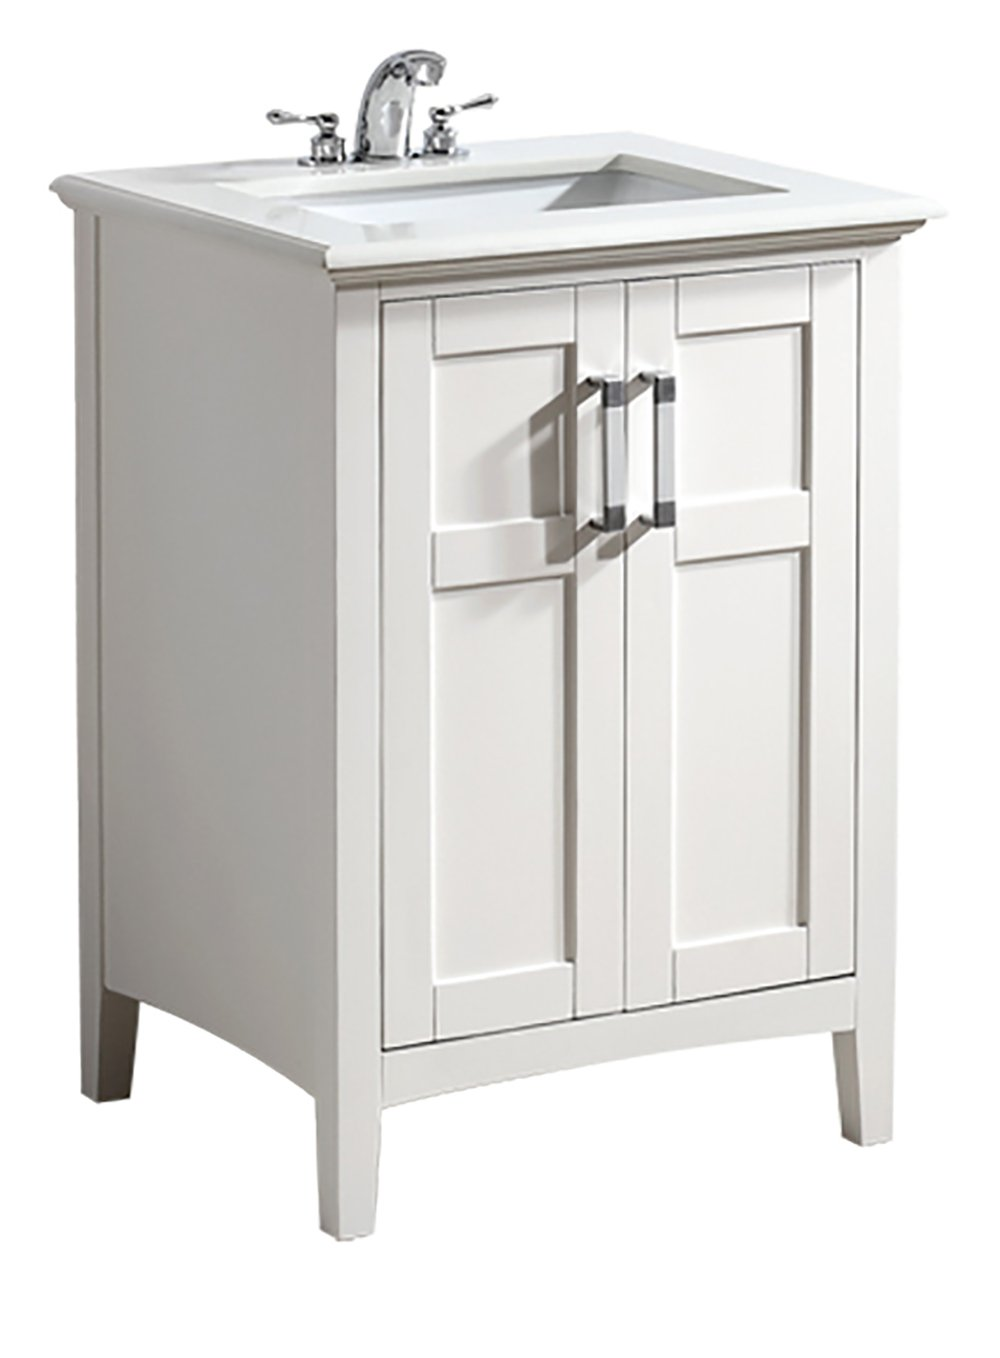 bathroom single top source marble pd project with cultured sink actual common vanity integral shop x in white